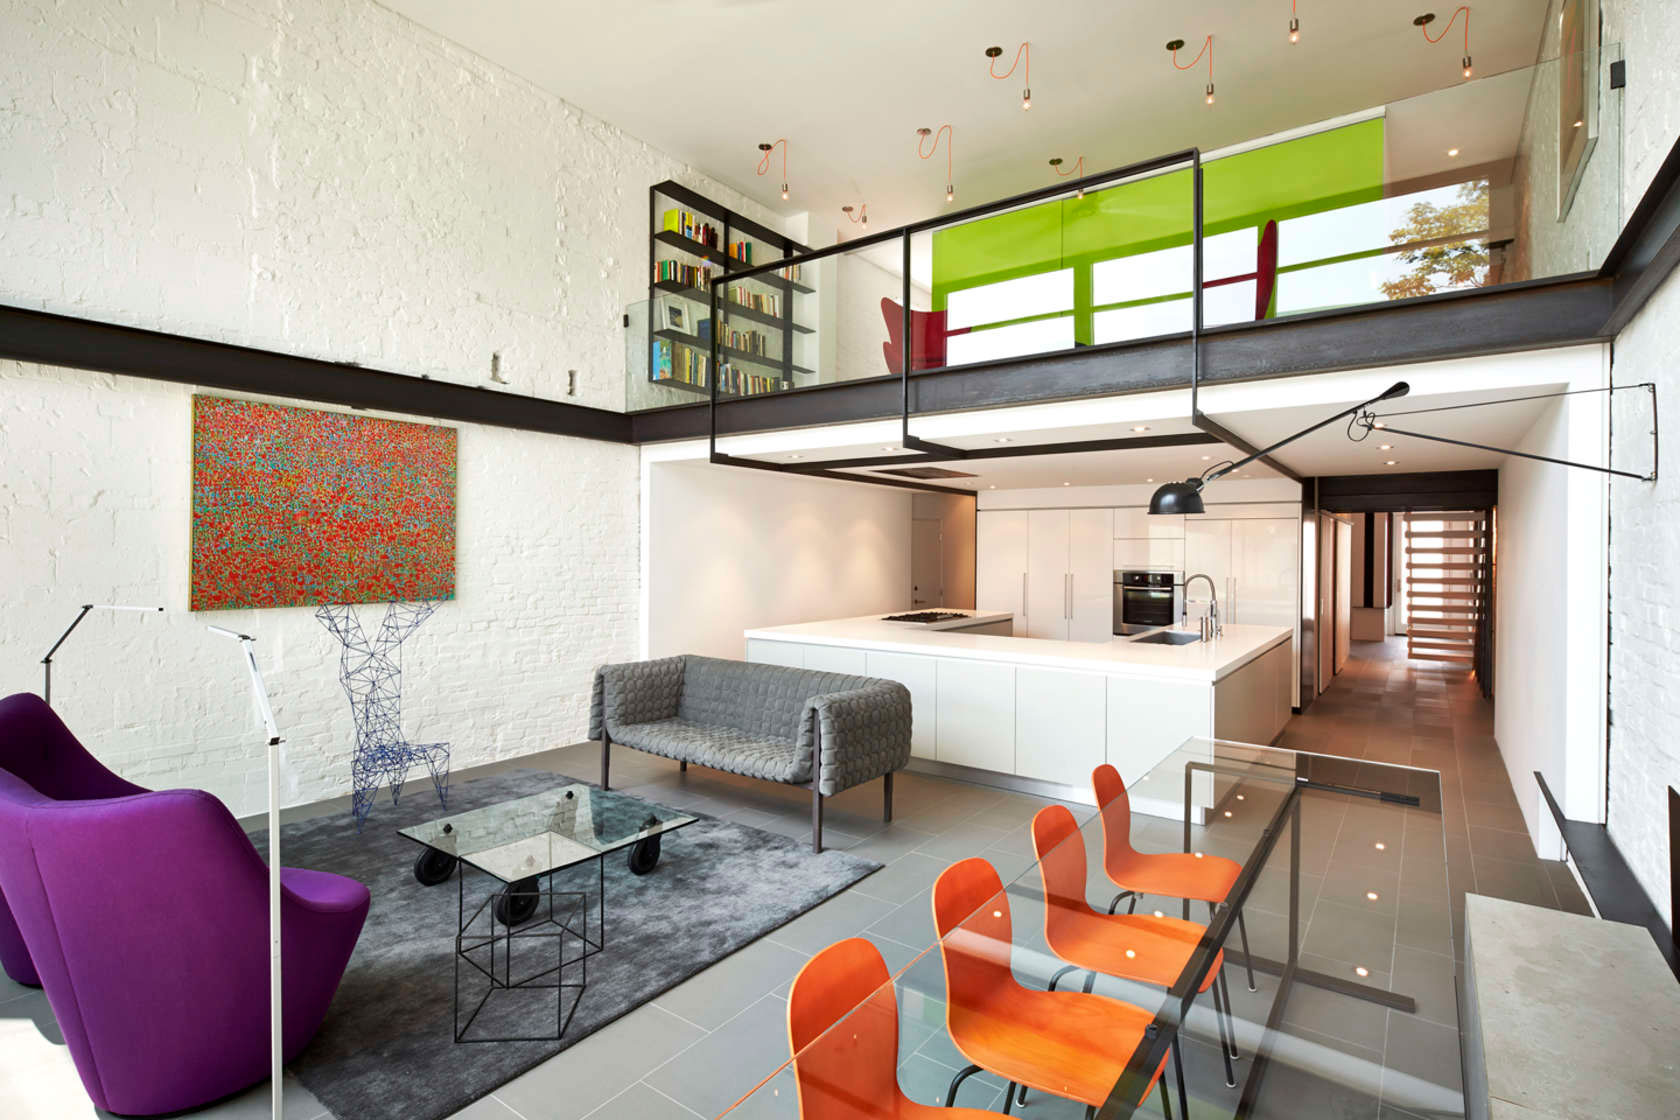 Salt and Pepper House in Washington, D.C. by KUBE Architecture-04